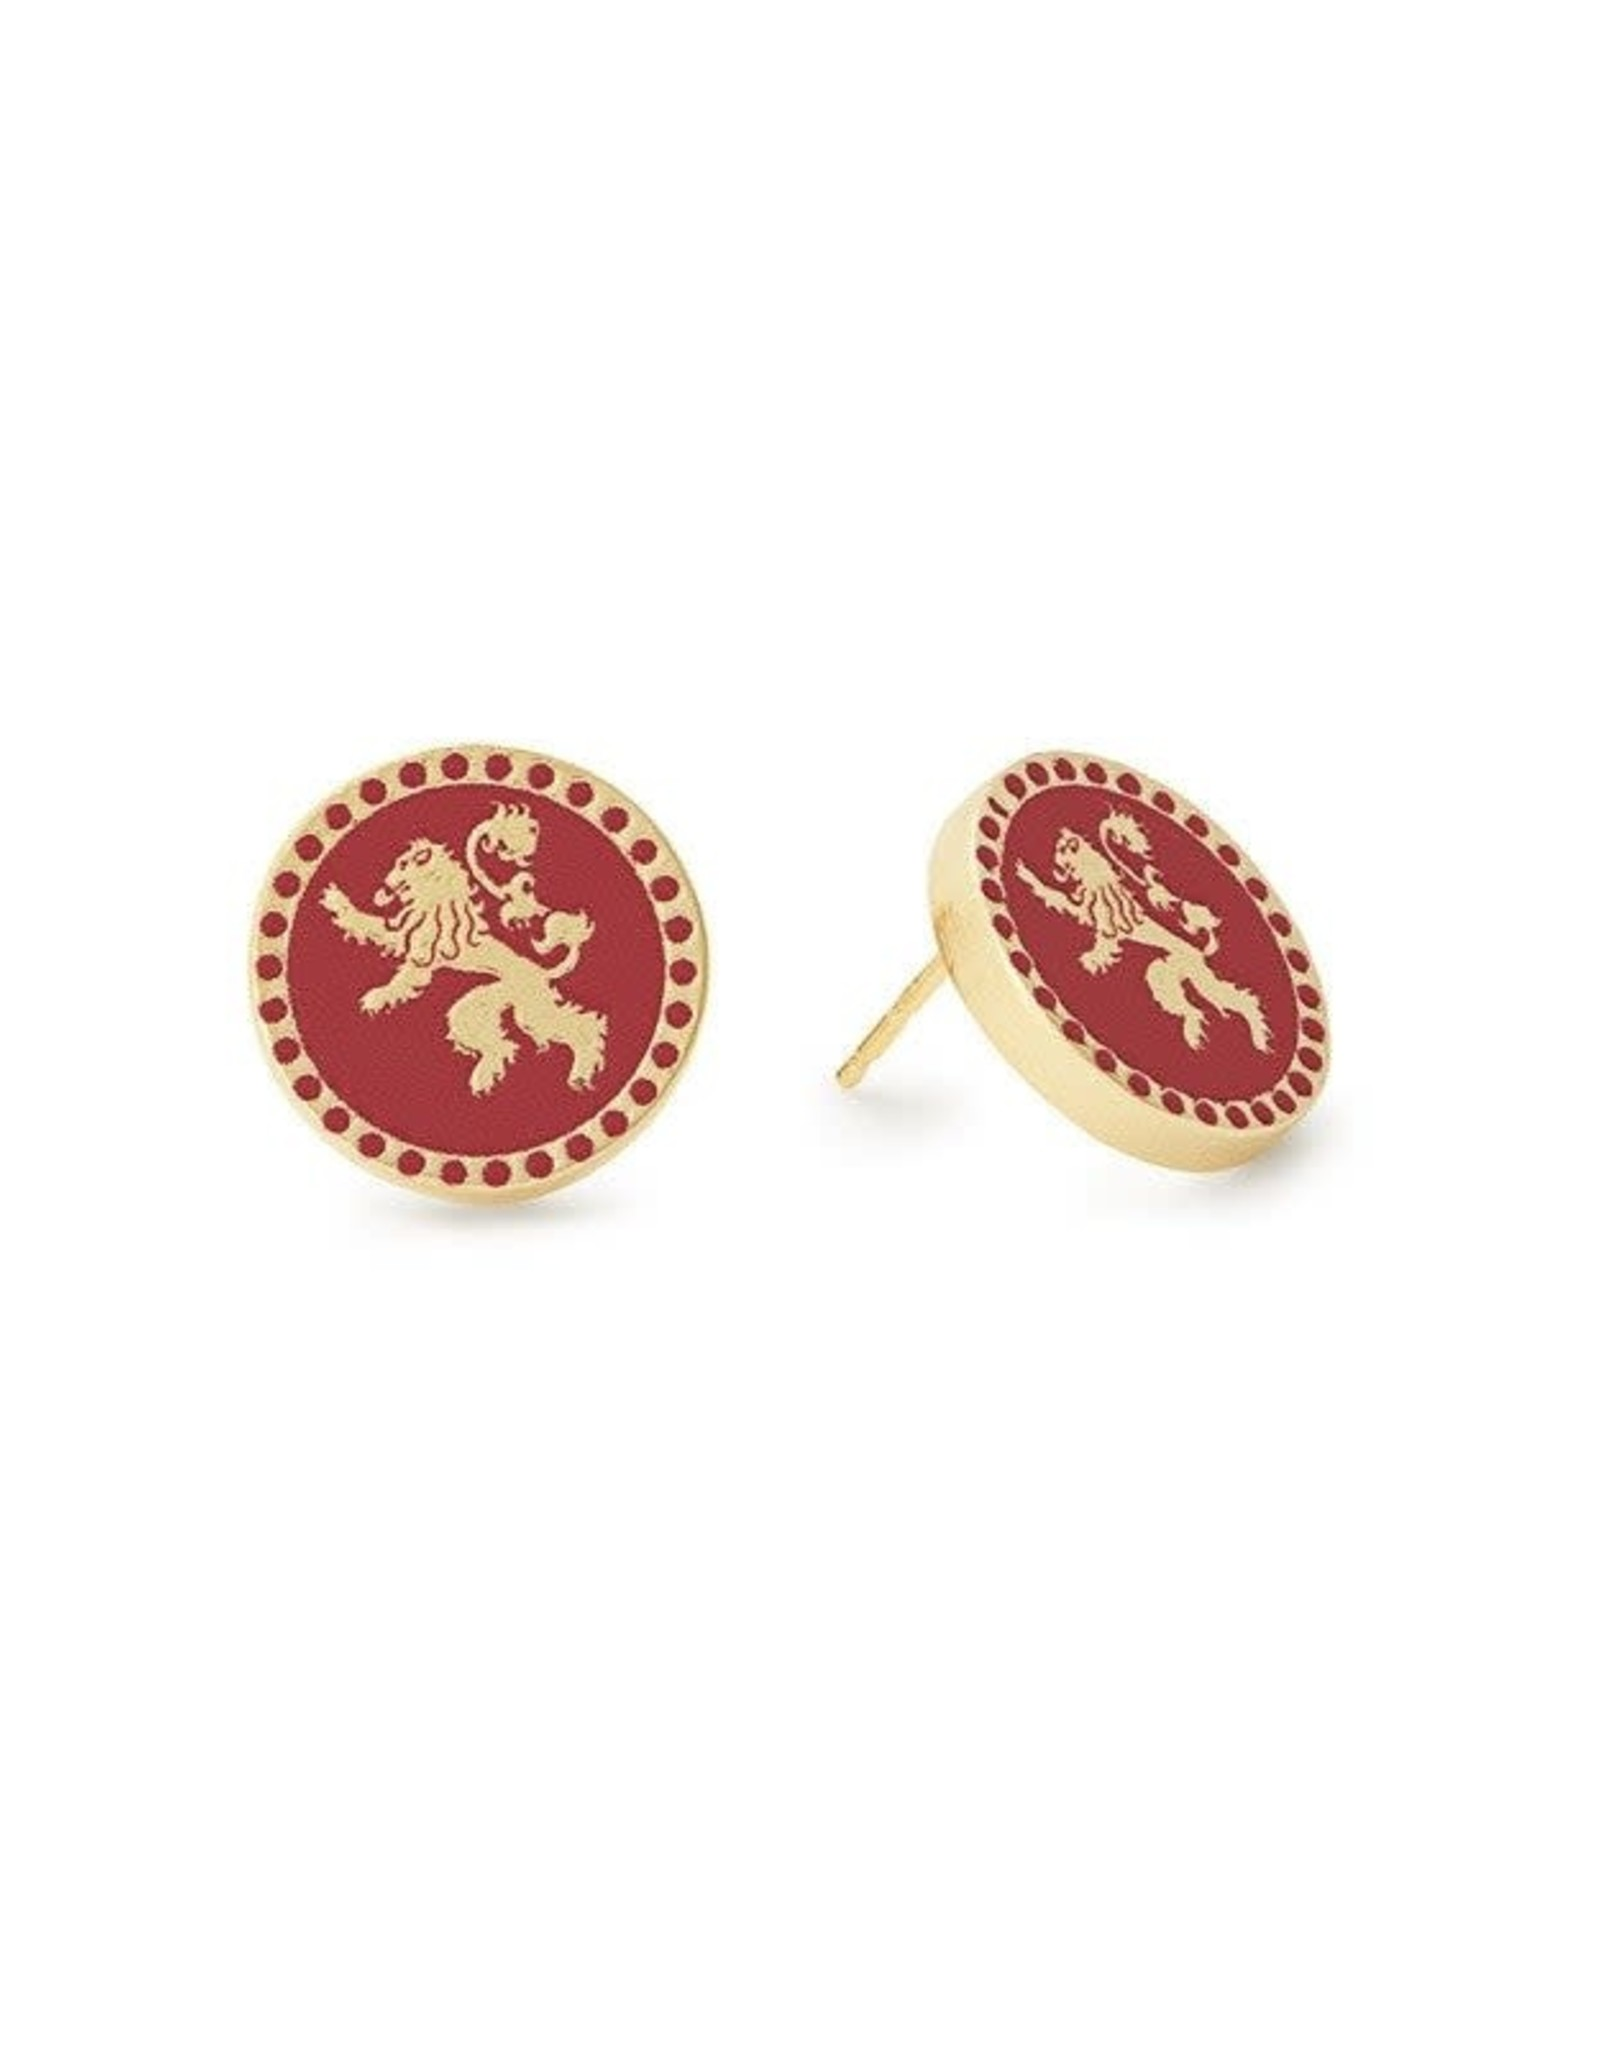 Alex and Ani Game of Thrones, Lannister Post Earrings, 14KT Gold Plated